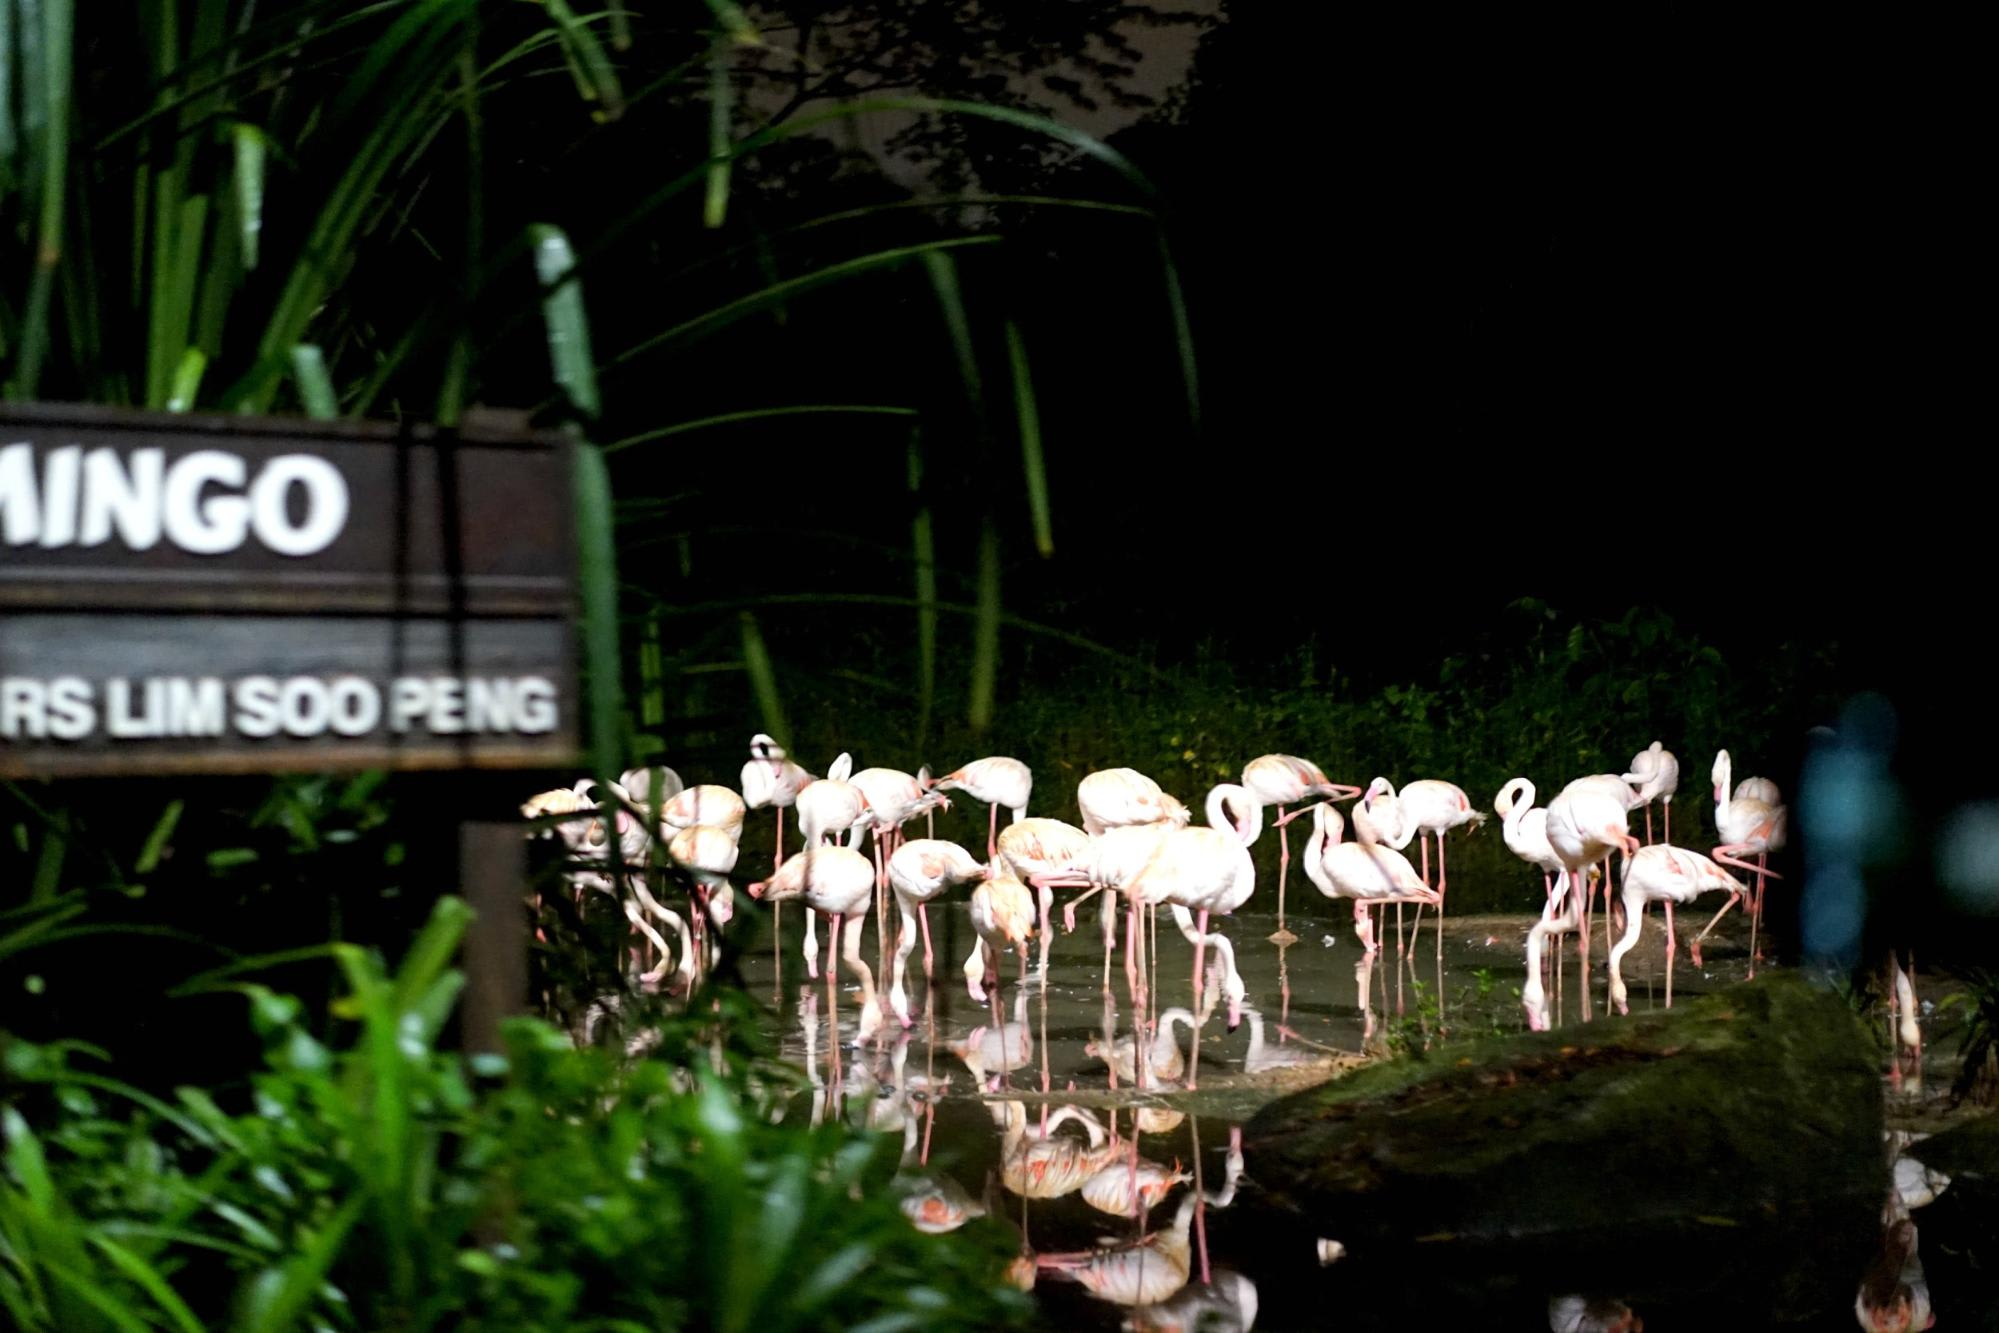 night safari singapore: hồng hạc